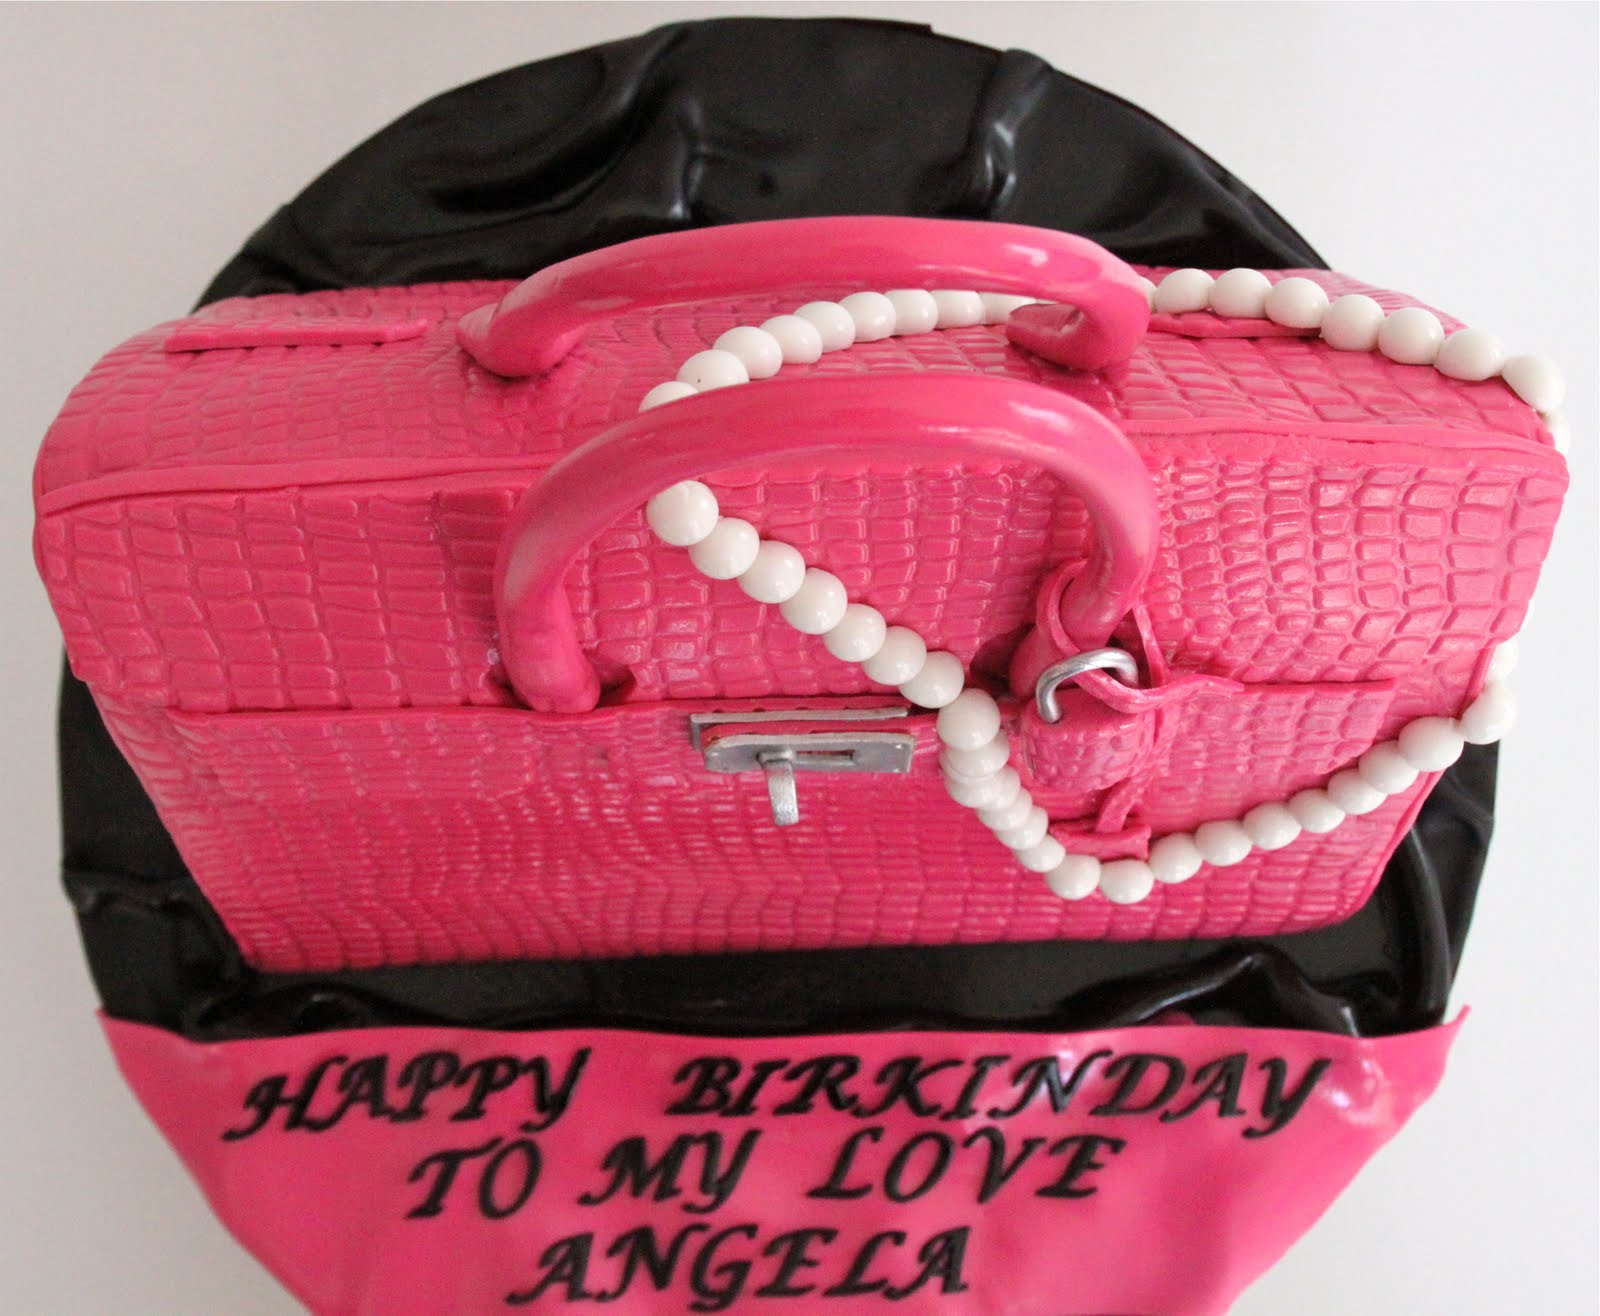 blue birkin bag - Celebrate with Cake!: Hermes Birkin Bag Cake